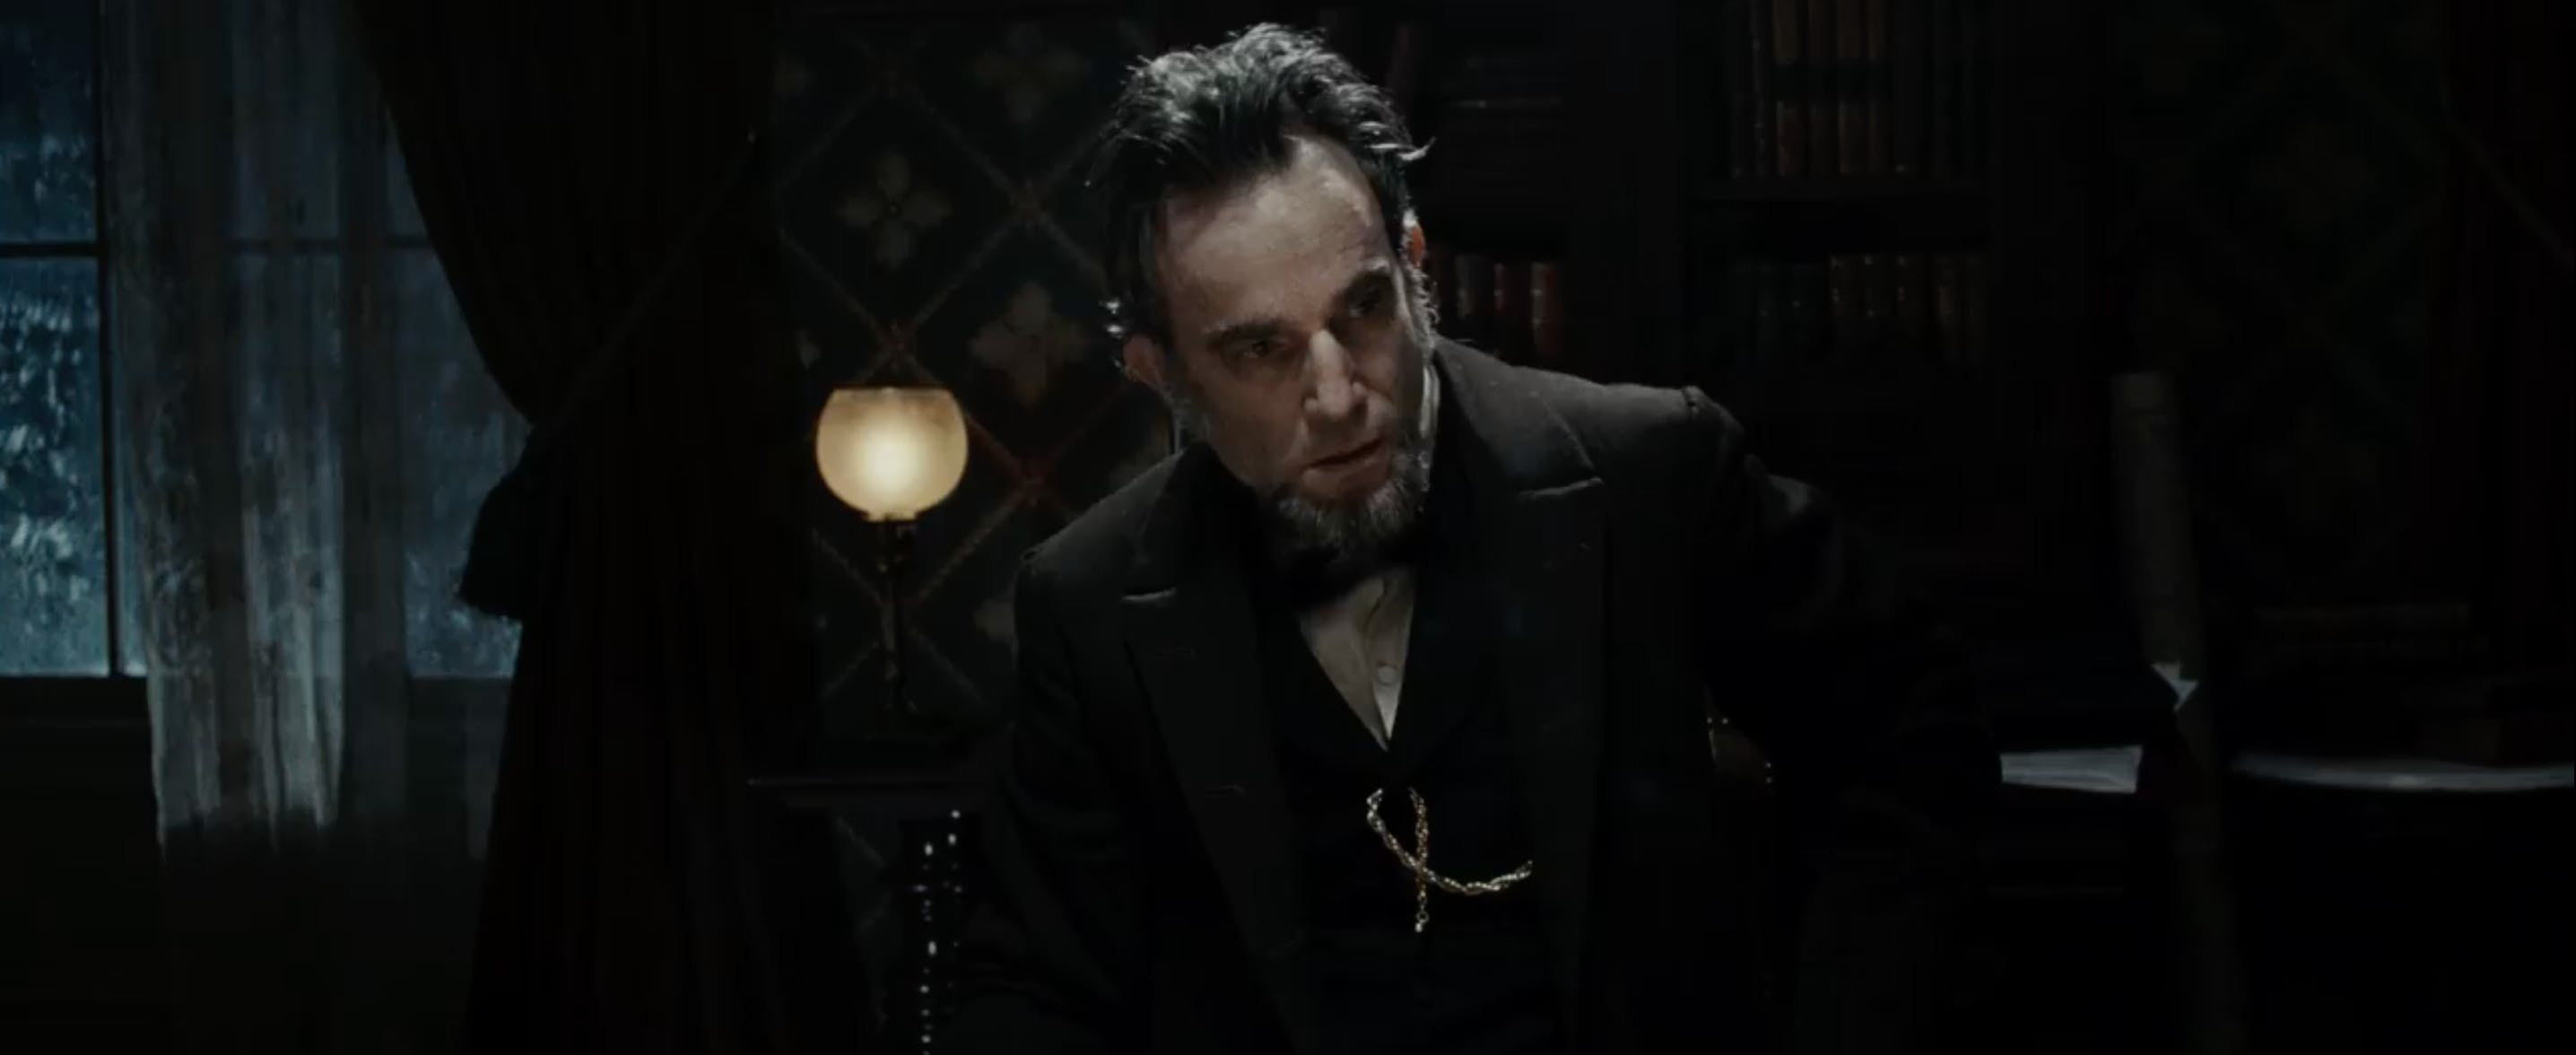 Best Movies based on true stories on Netflix: Lincoln